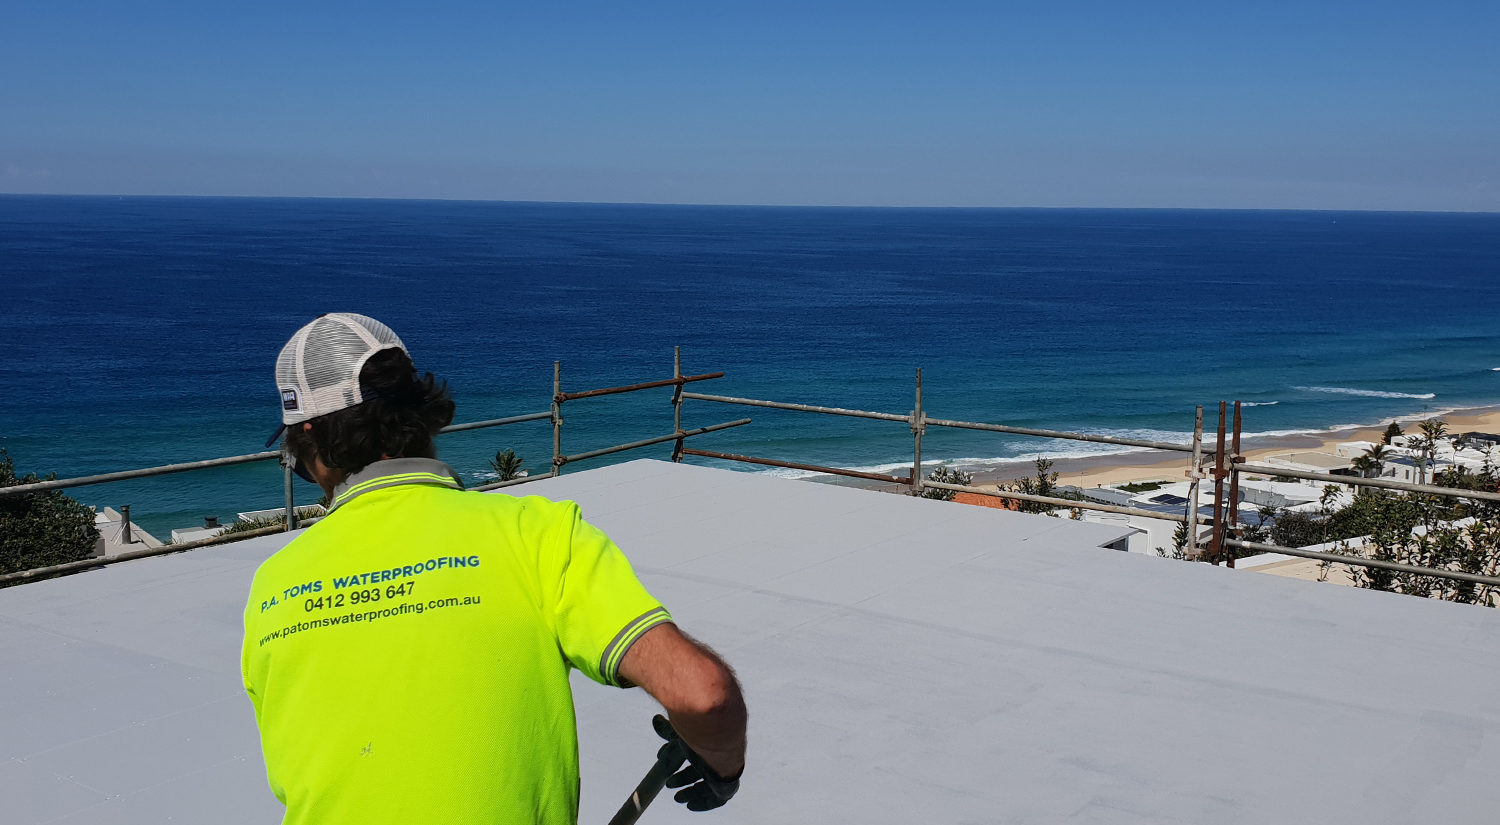 waterproofing-noosa-heads-roof-washing | PA Toms Waterproofing